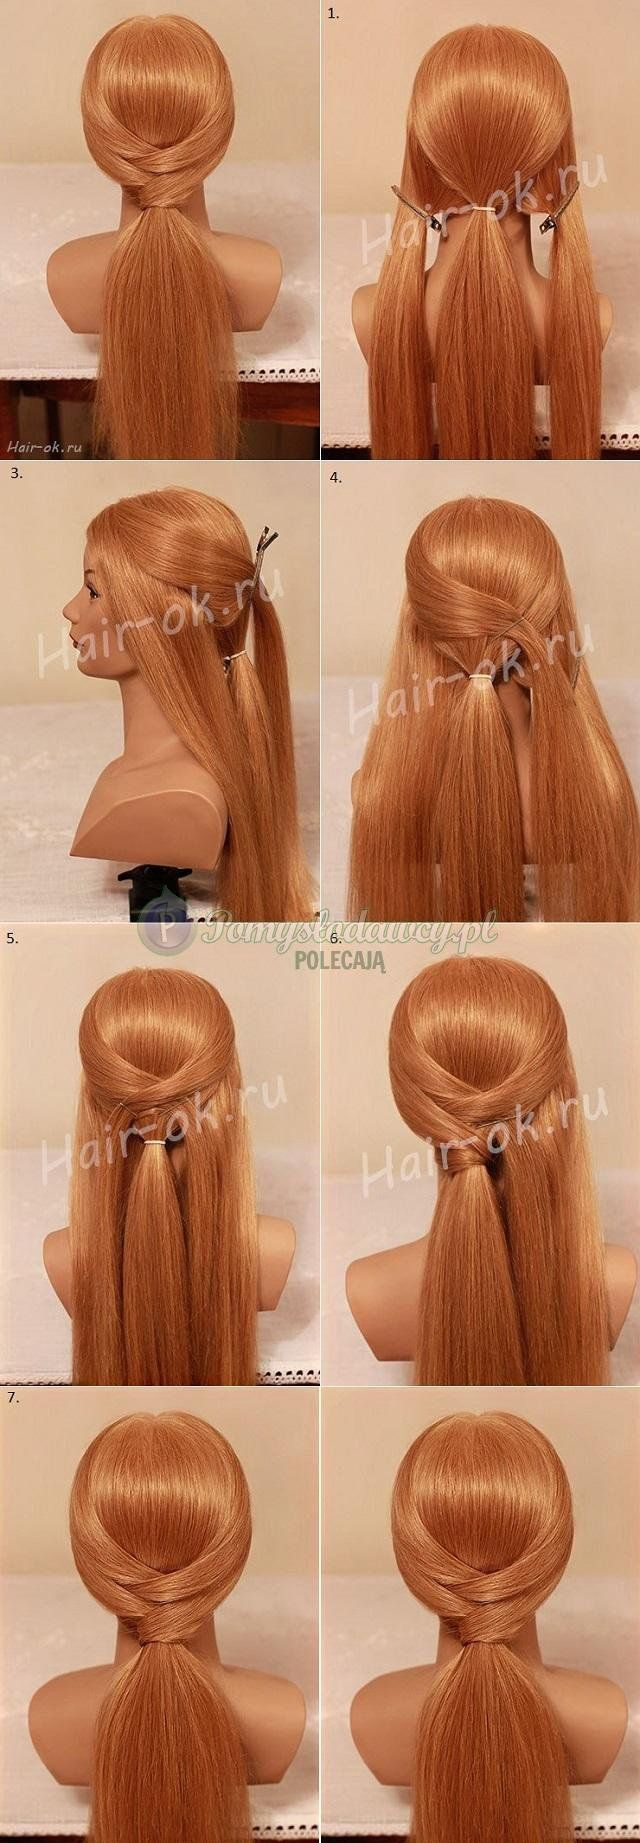 Quick Cute Ponytail Hairstyles 25 Best Ideas About Low Ponytails On Pinterest Messy Low